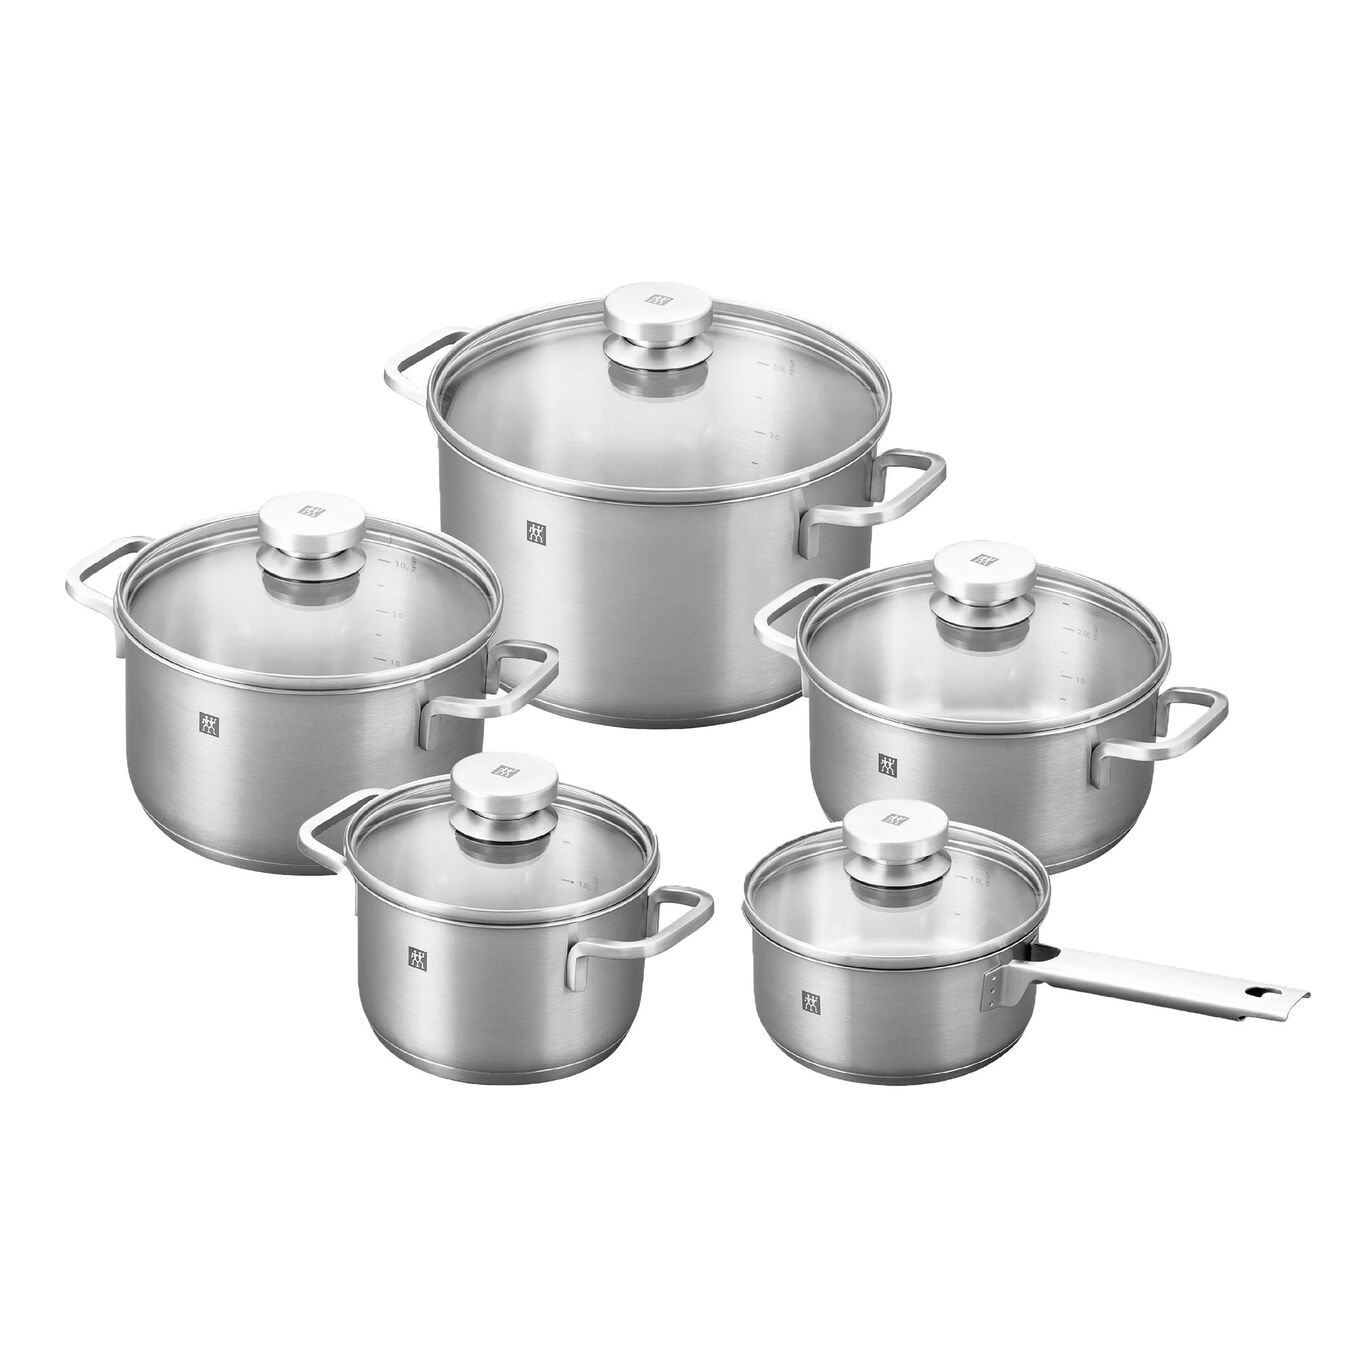 Pot set, 10 Piece   round   18/10 Stainless Steel,,large 1